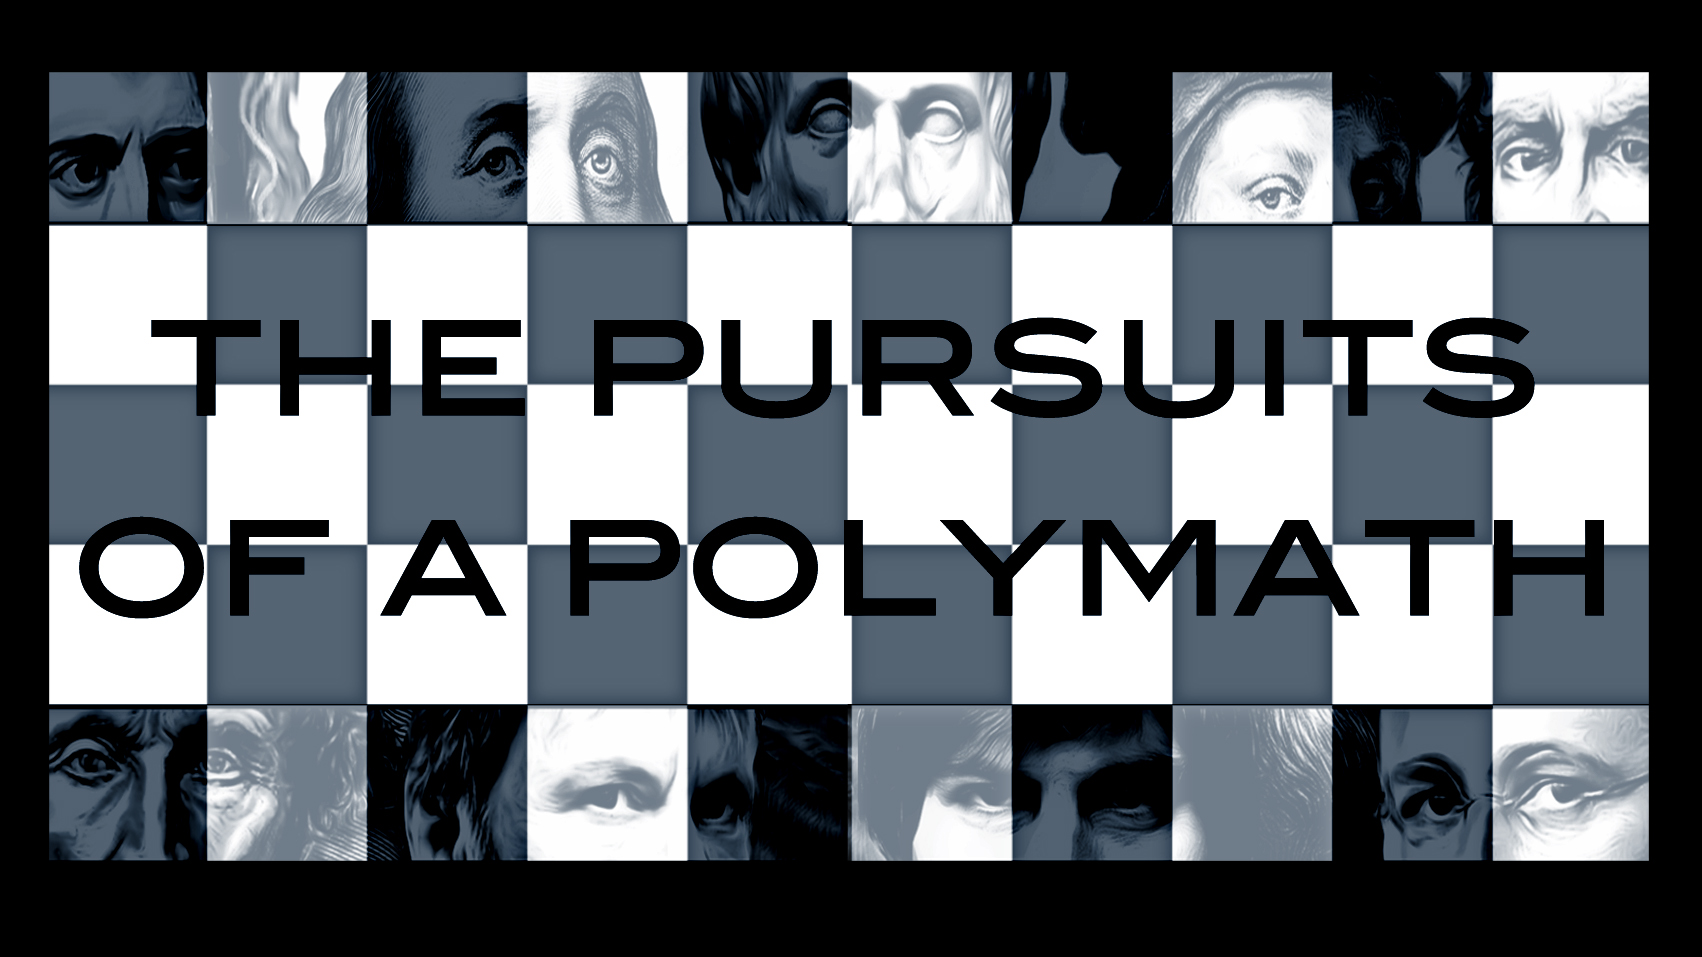 The polymath - (from the Greek)having learned much